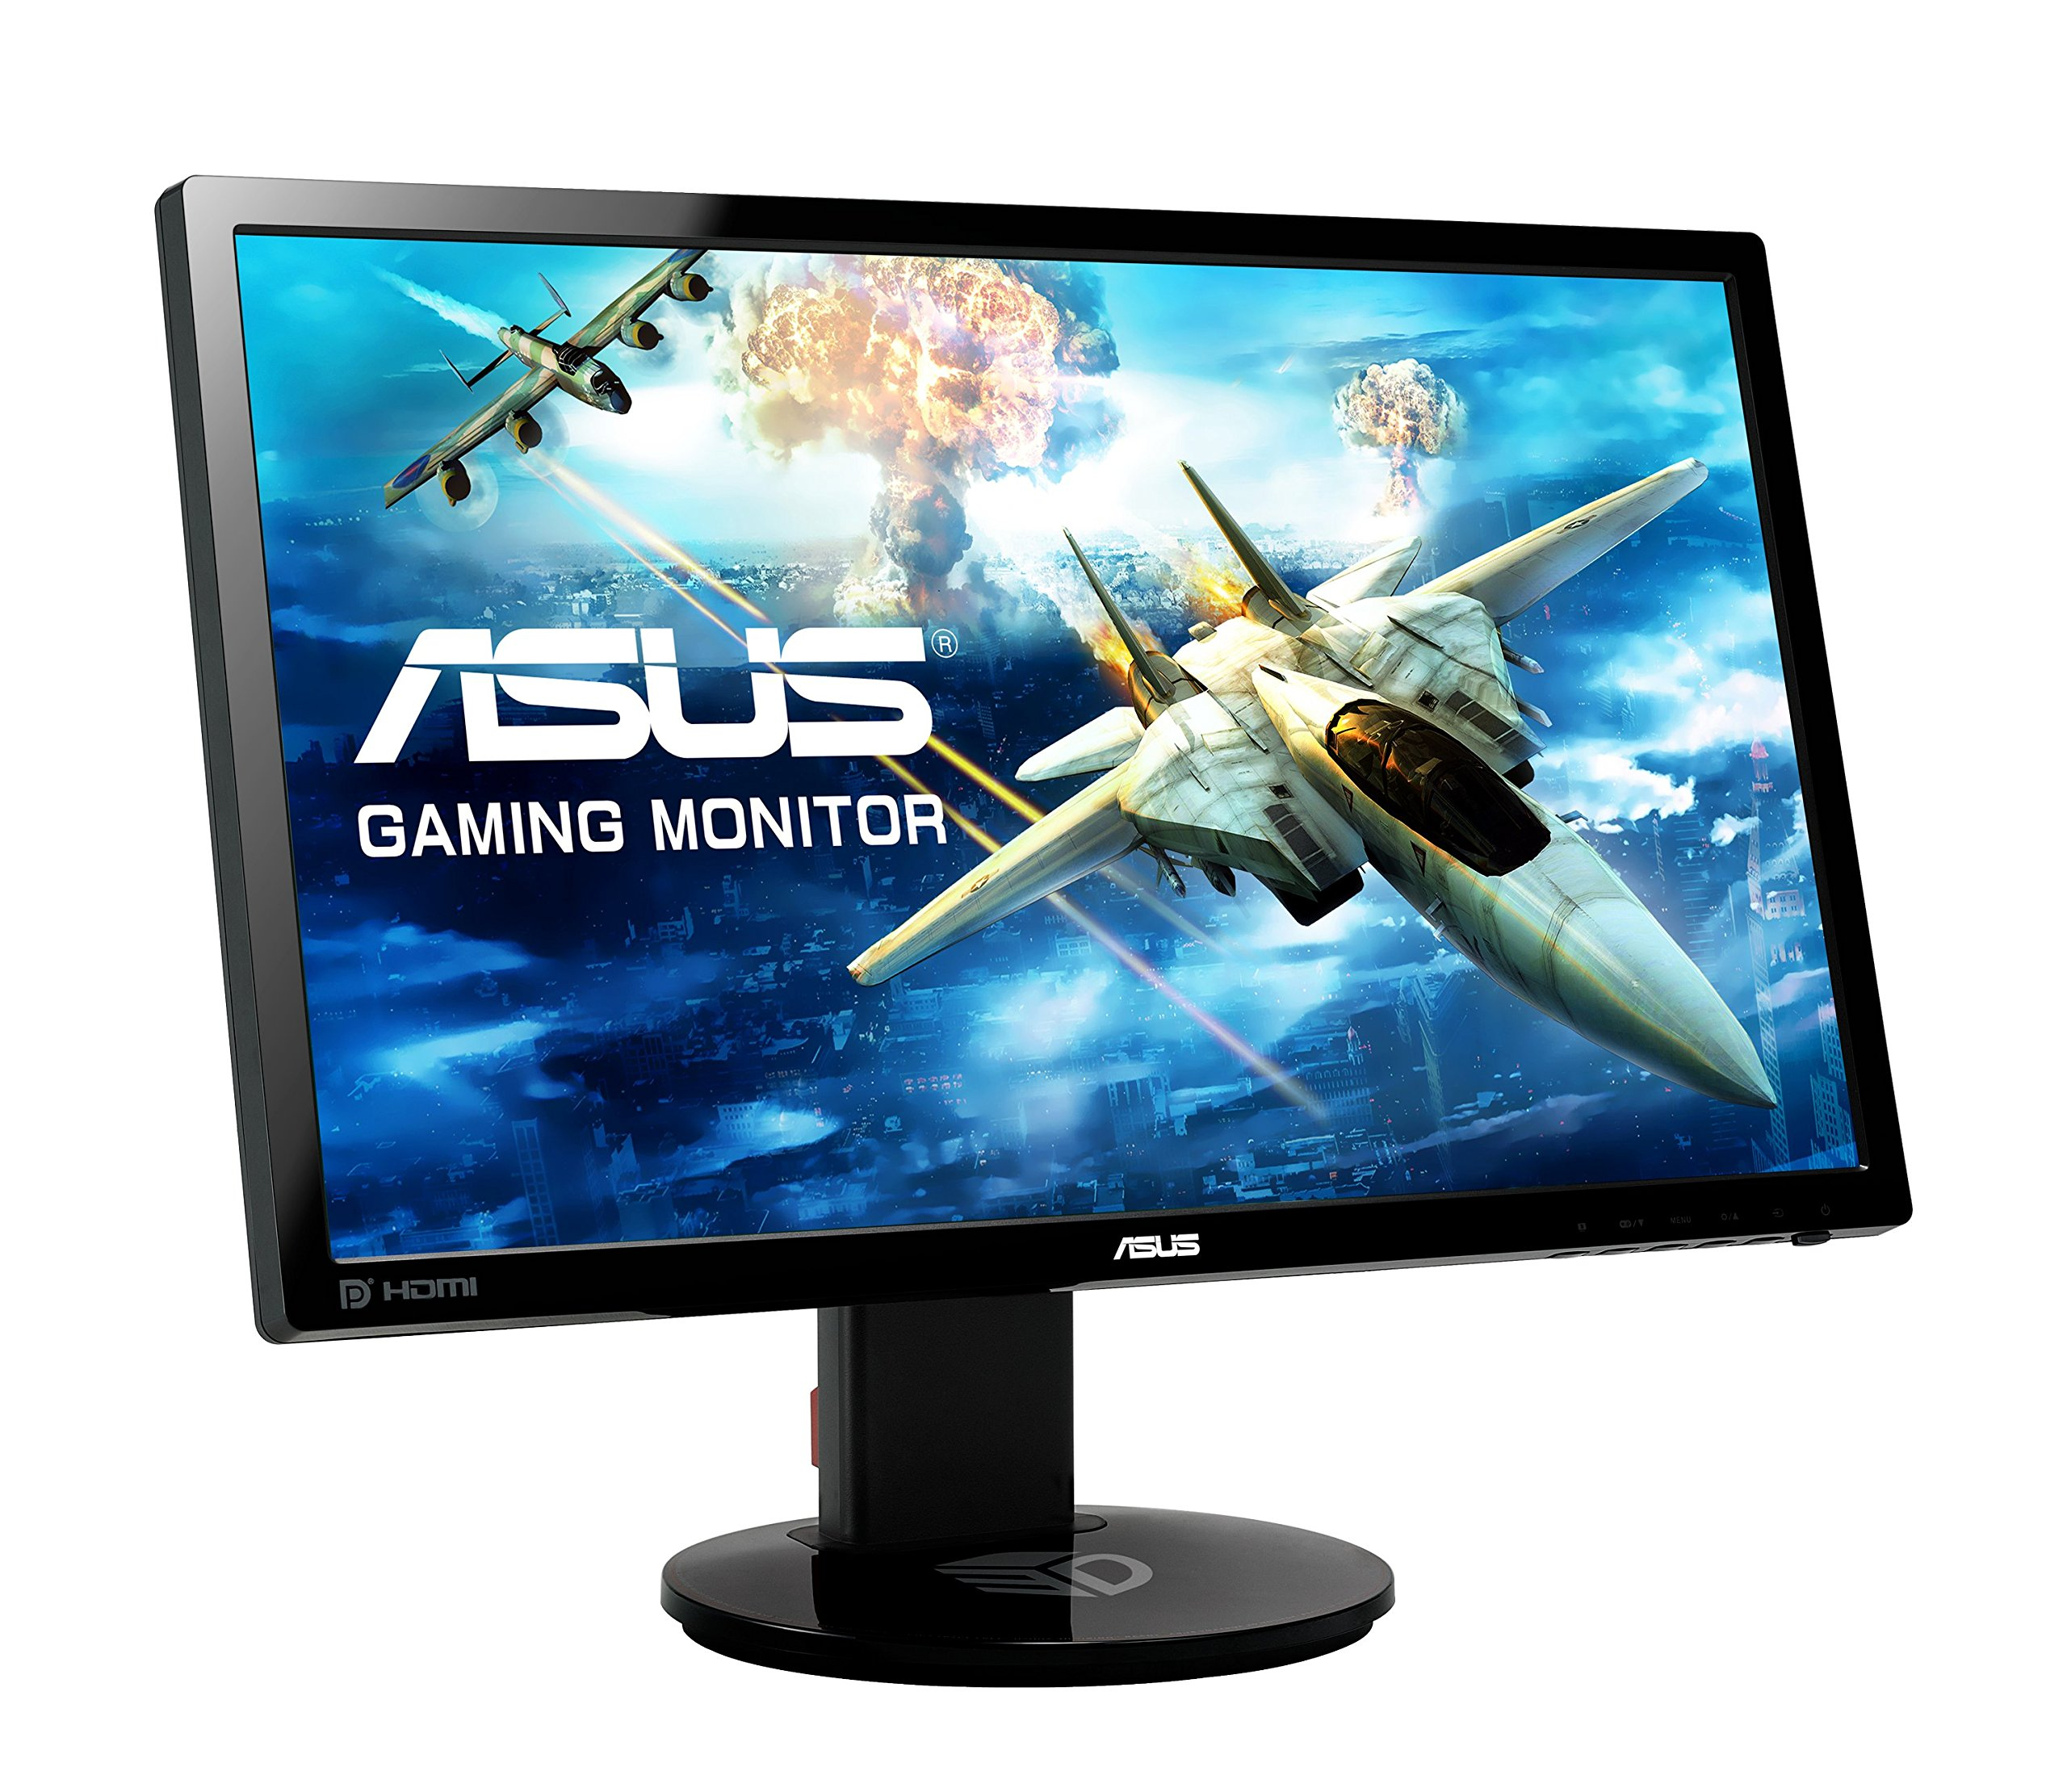 ASUS-VG278QR-Esports-Gaming-Monitor-05-ms-Up-to-165-Hz-DP-HDMI-DVI-FreeSync-Low-Blue-Light-Flicker-Free-TUV-Certified